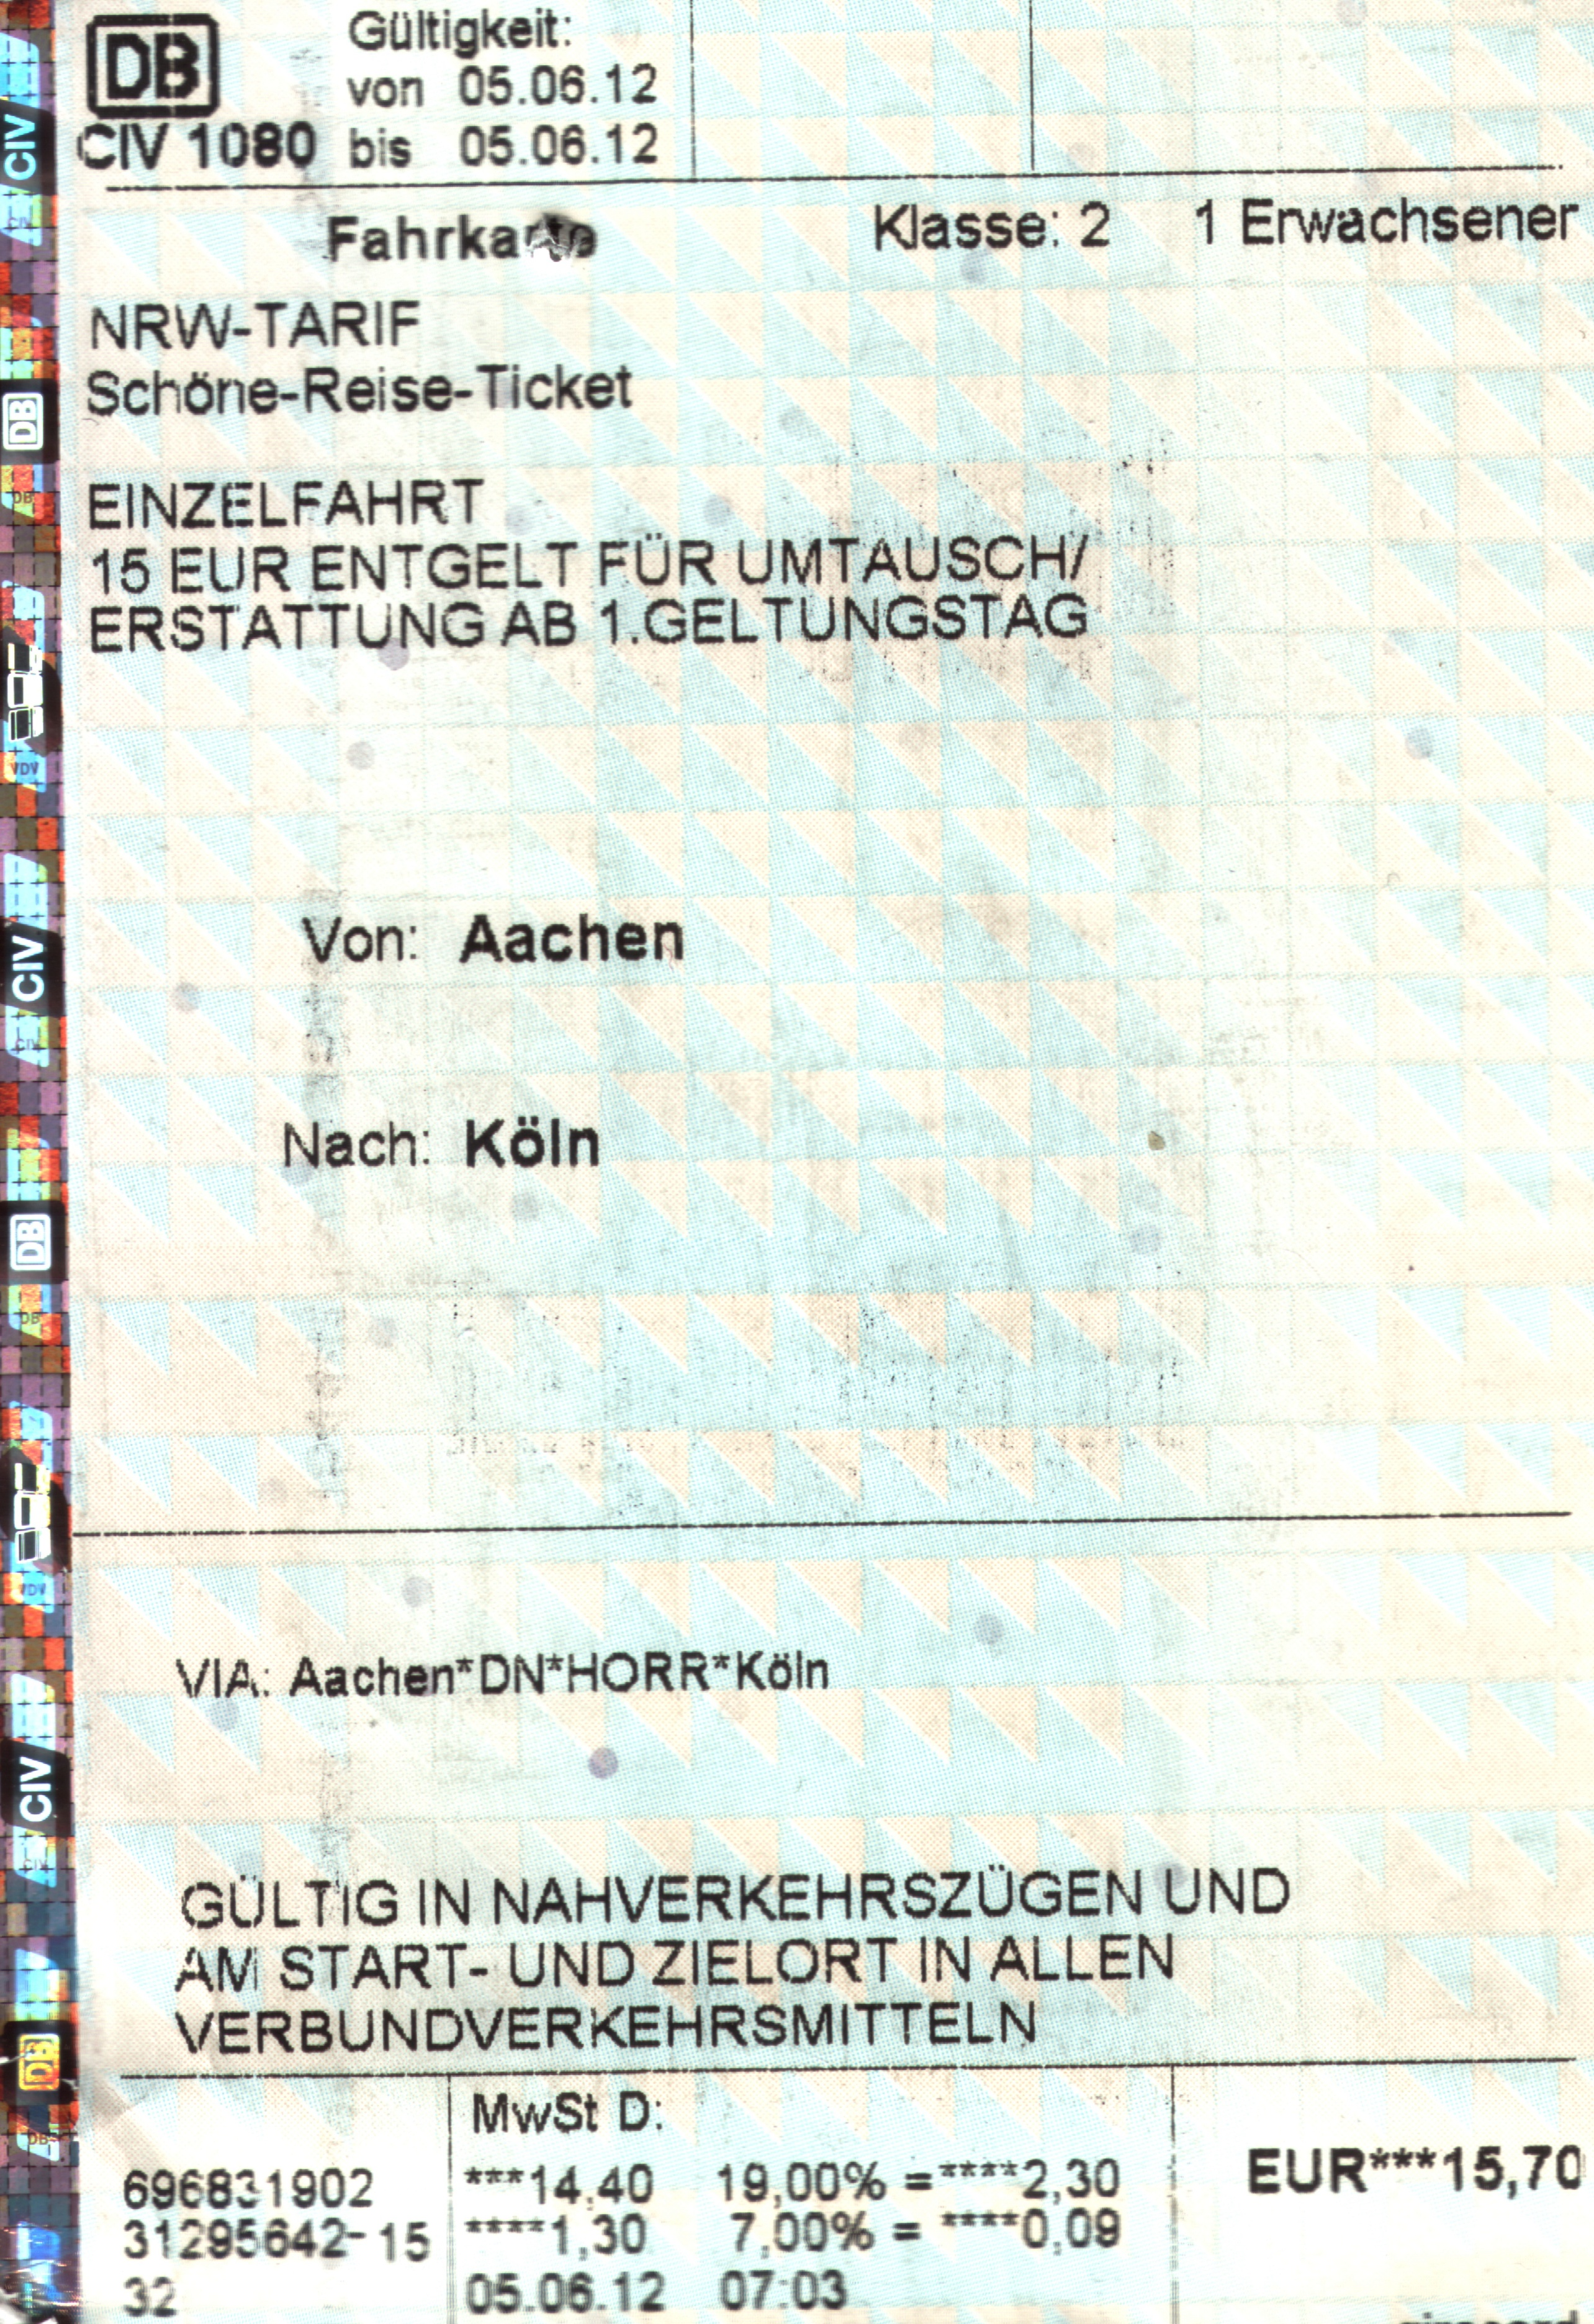 nrw single tagesticket The mehrtagesticket card single persons pay € 45 for the ticket, the price for a family/partner ticket (2 adults and their children under 18) is € 65.